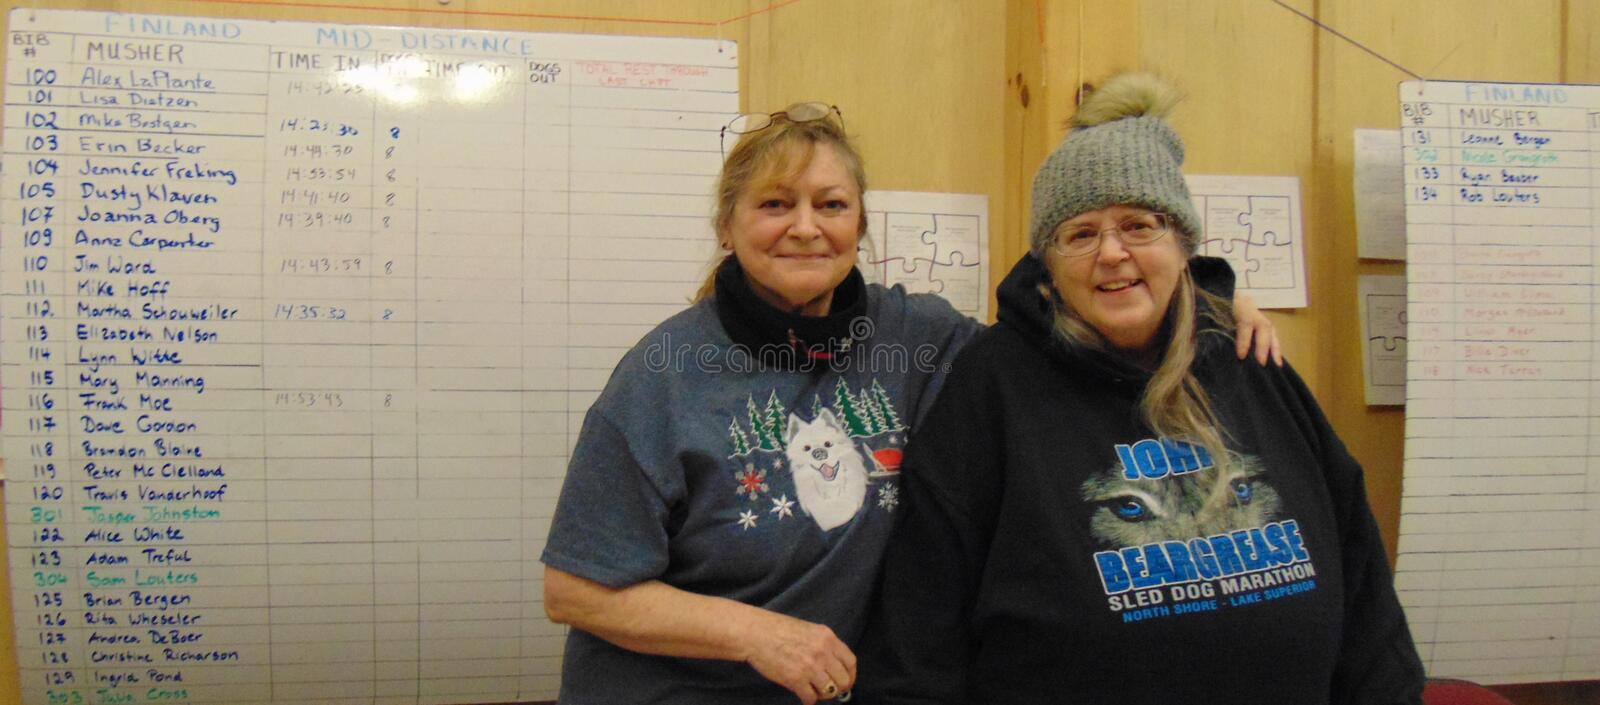 John Beargrease Sled Dog Marathon 2018 Finland Checkpoint volunteers Glori and Joyce with early times in the background stock photo